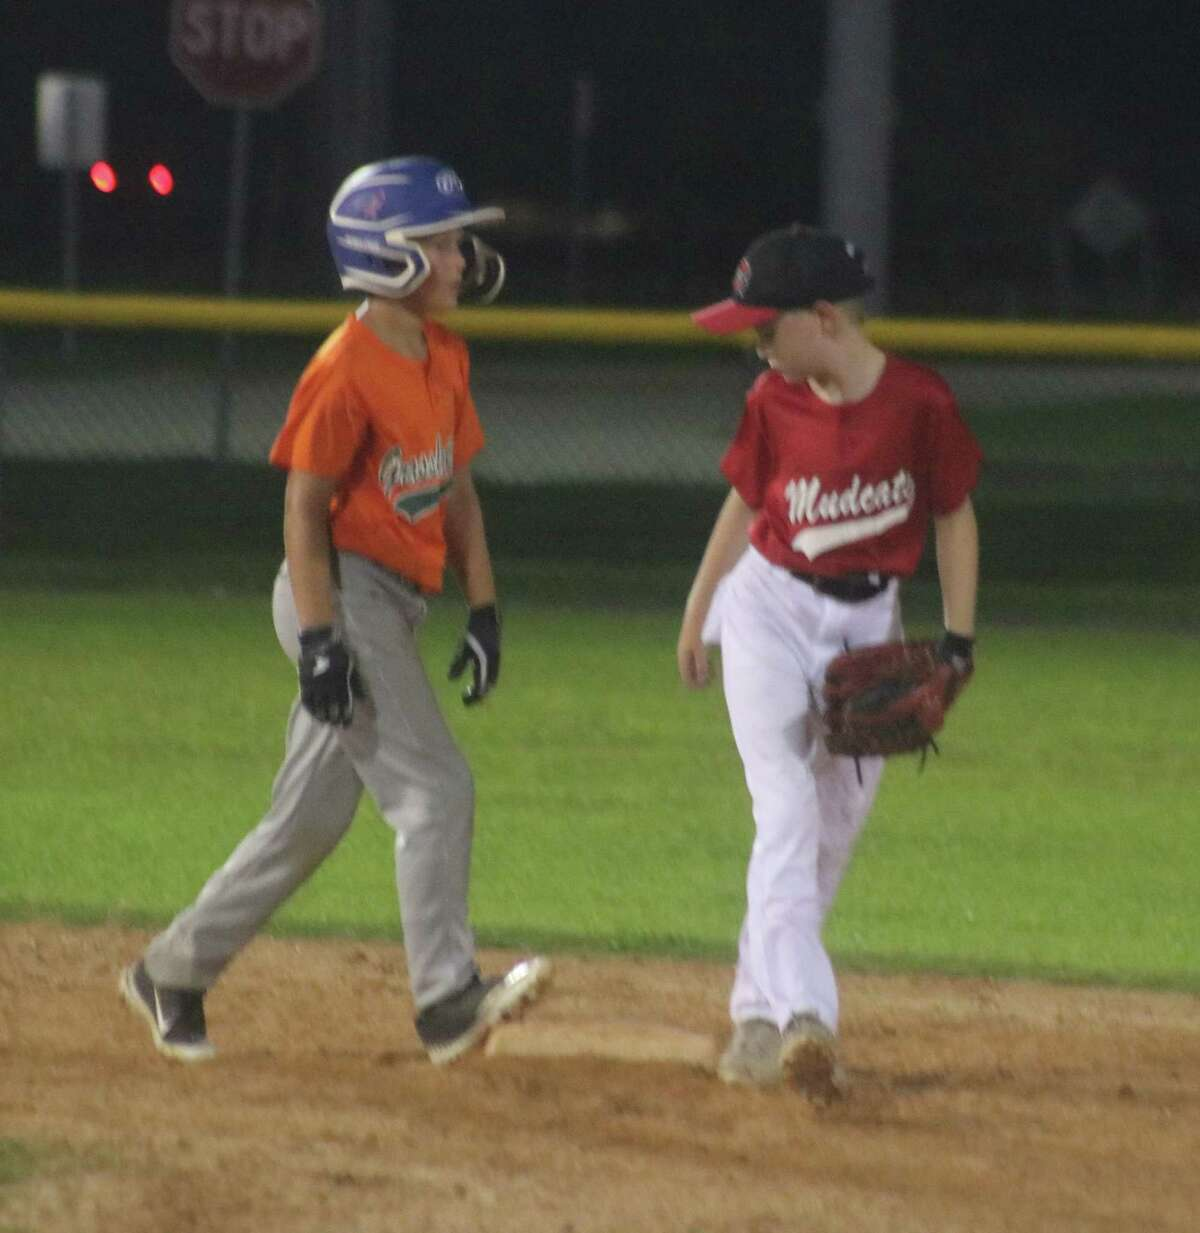 The Mudcats second baseman patrols near the bag, making sure this Grasshopper runner stays on the bag Monday night.